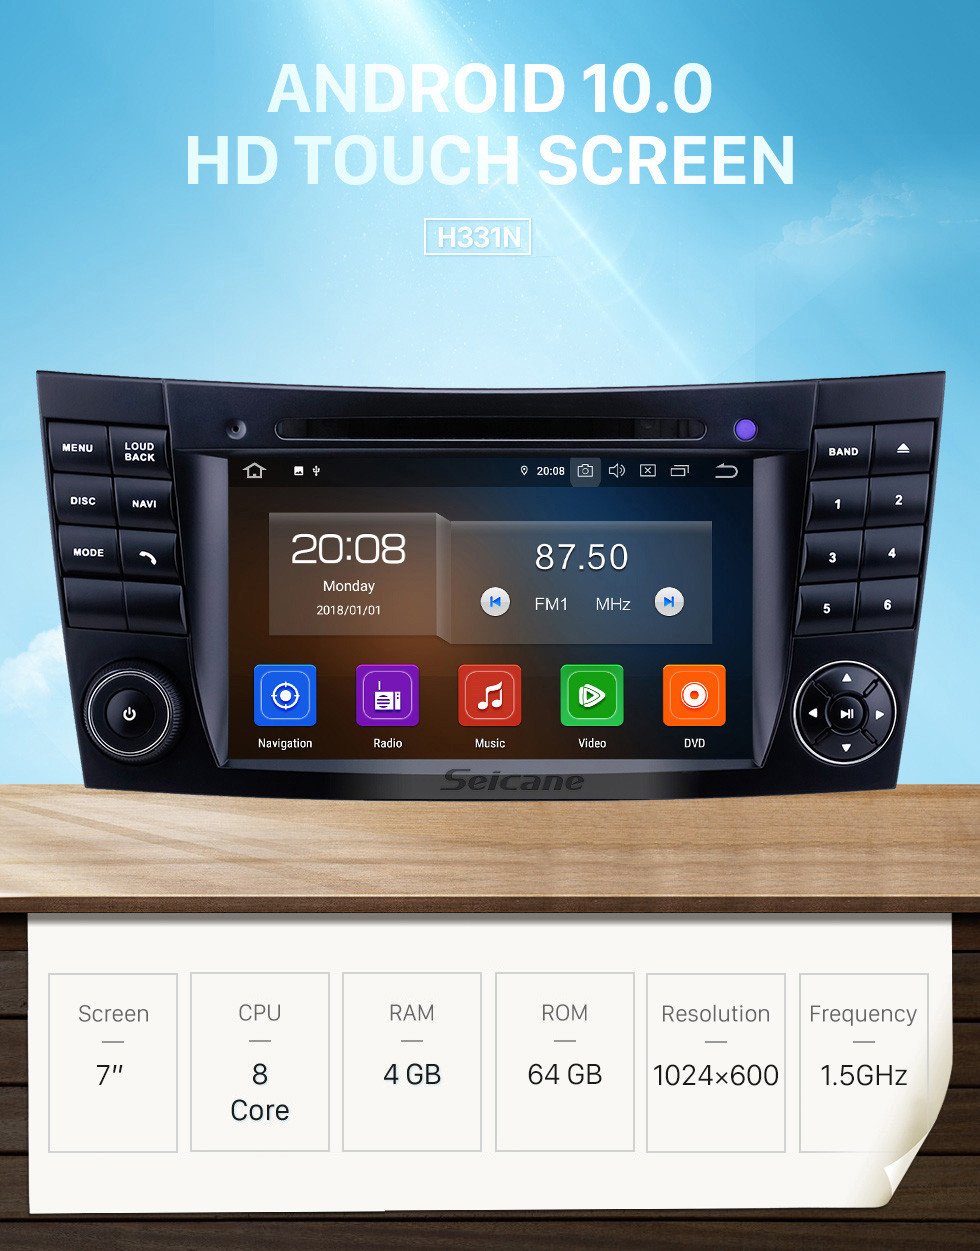 Seicane HD Touchscreen 7 inch Mercedes Benz CLK W209 Android 10.0 GPS Navigation Radio Bluetooth AUX WIFI USB Carplay support DAB+ 1080P Video